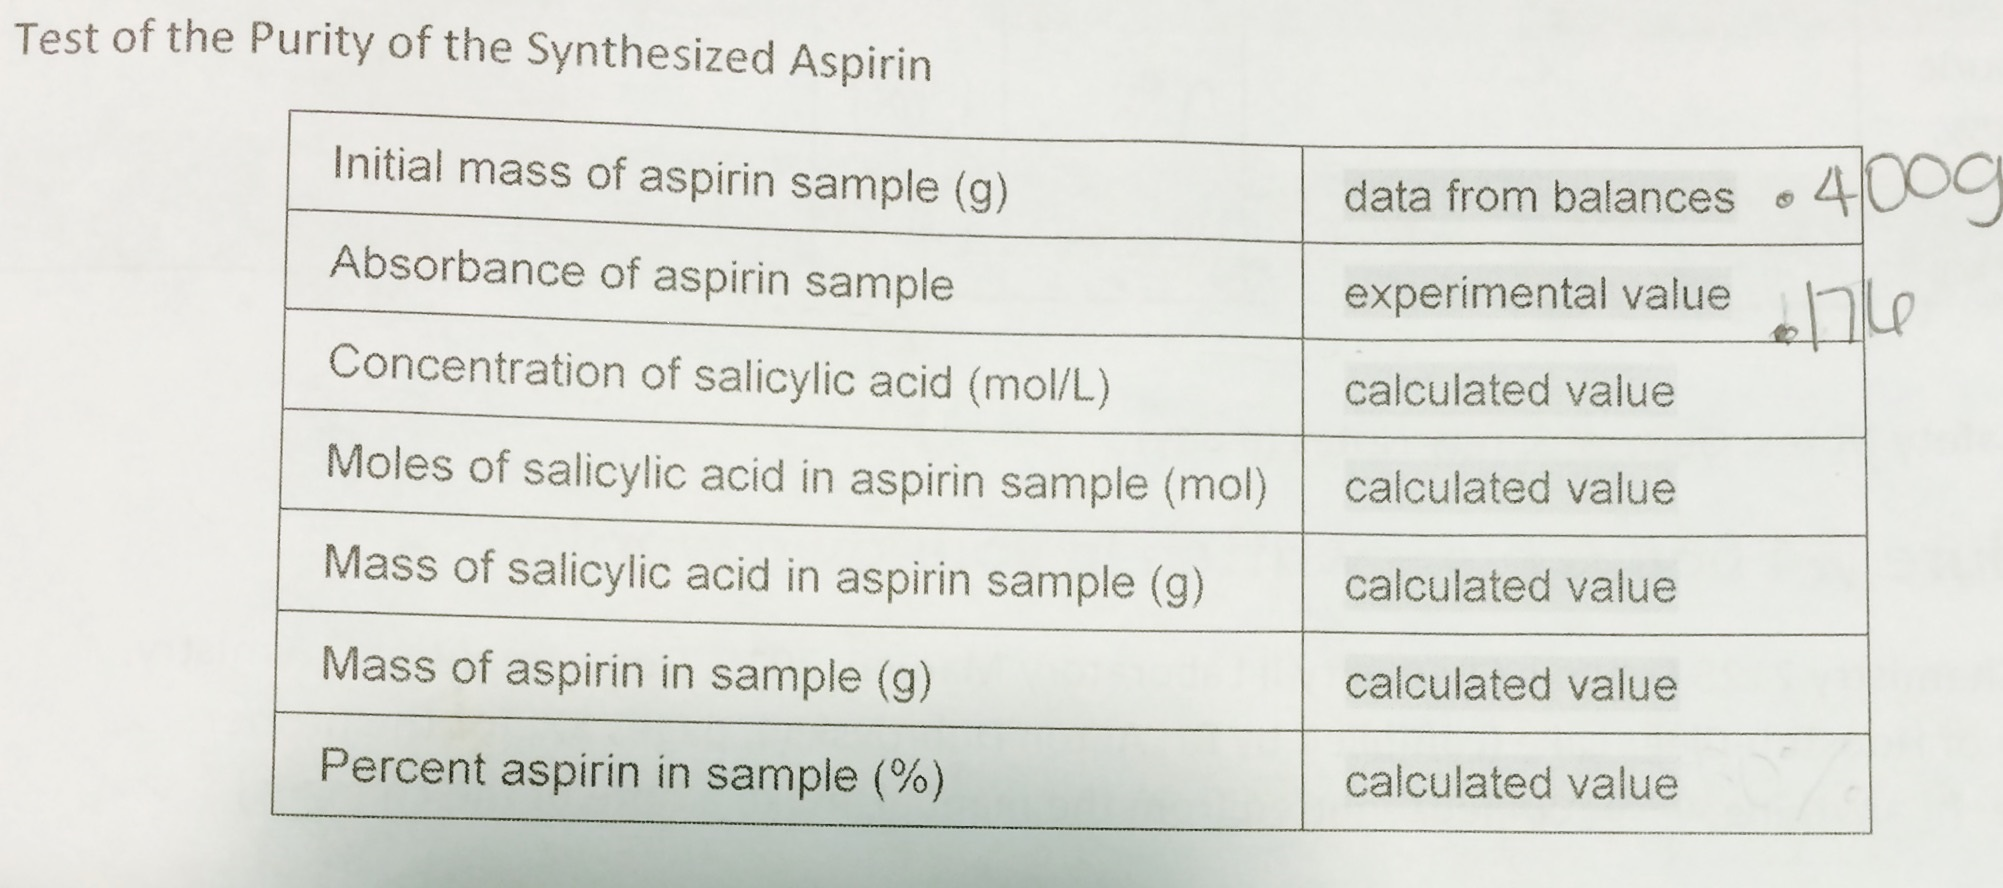 the purity of prepared of aspirin biology essay We will write a custom essay sample on the aspirin sample was prepared for standards test of the purity of the synthesize sample aspirin initial mass.